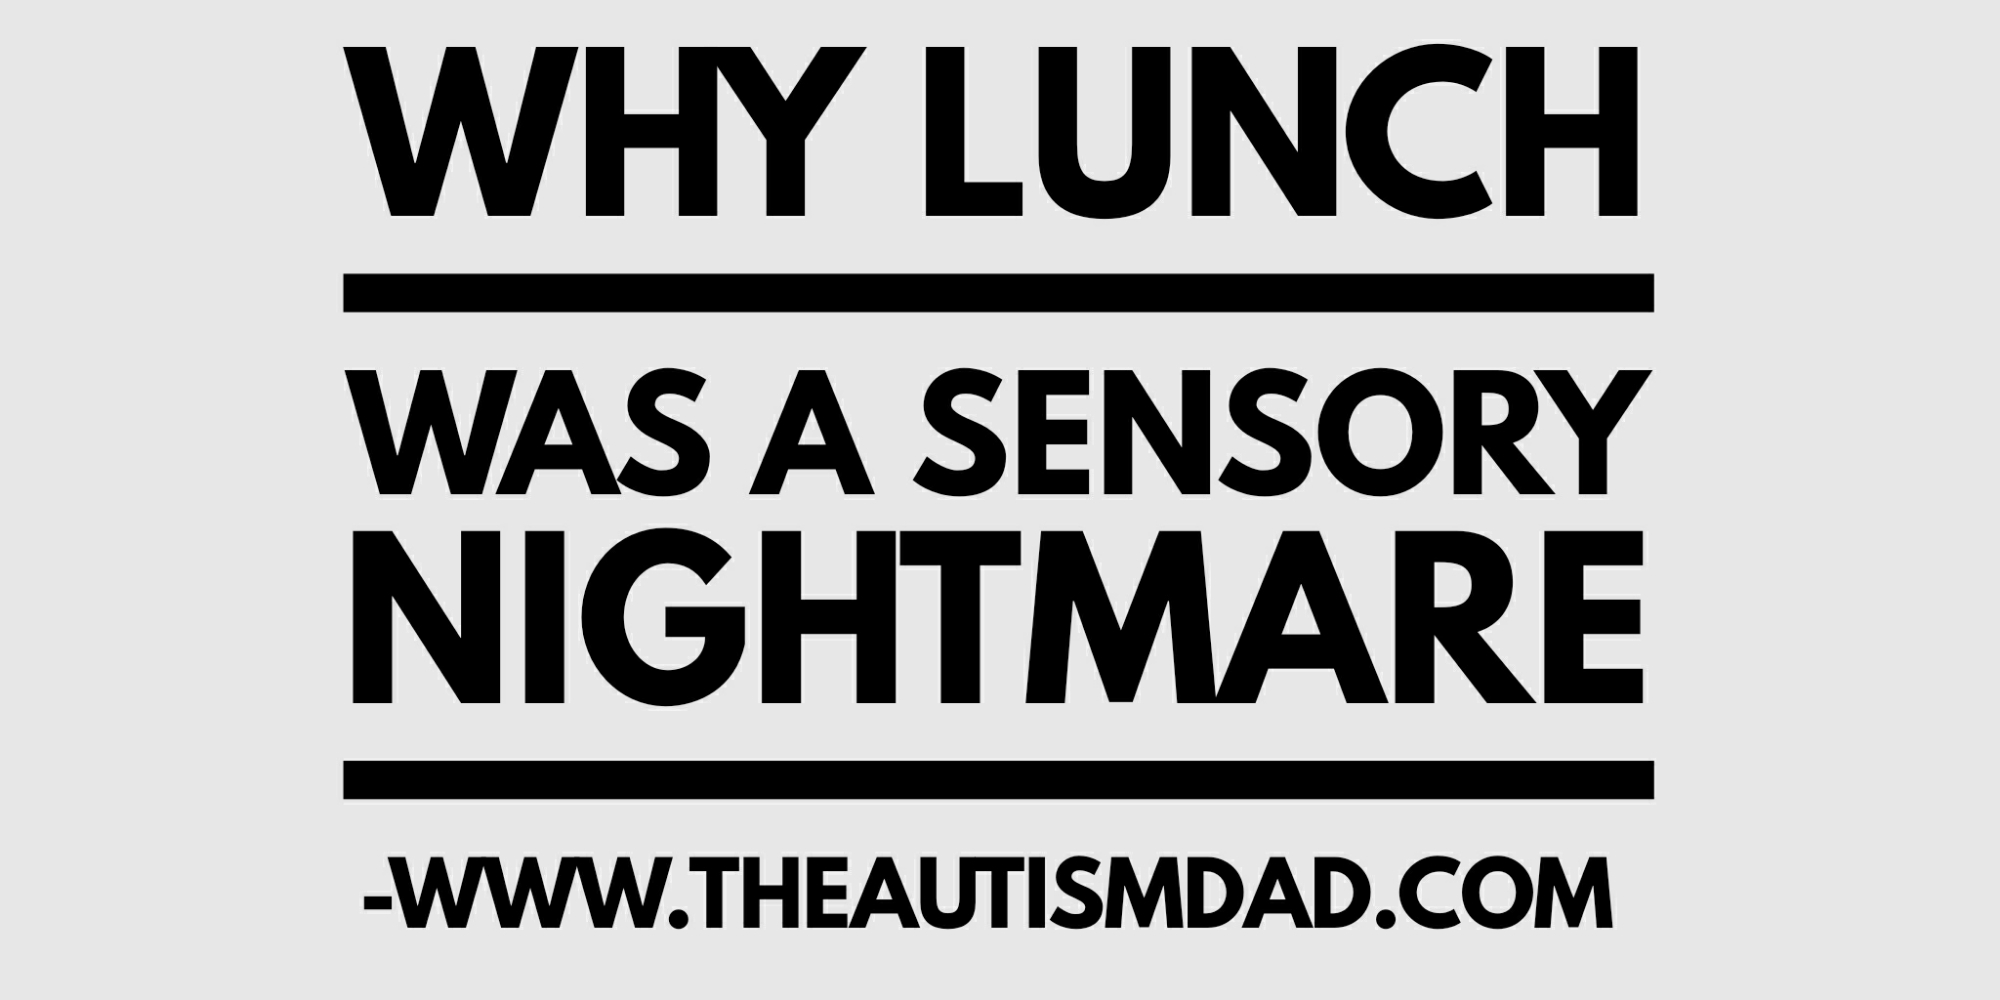 Why lunch was a sensory nightmare